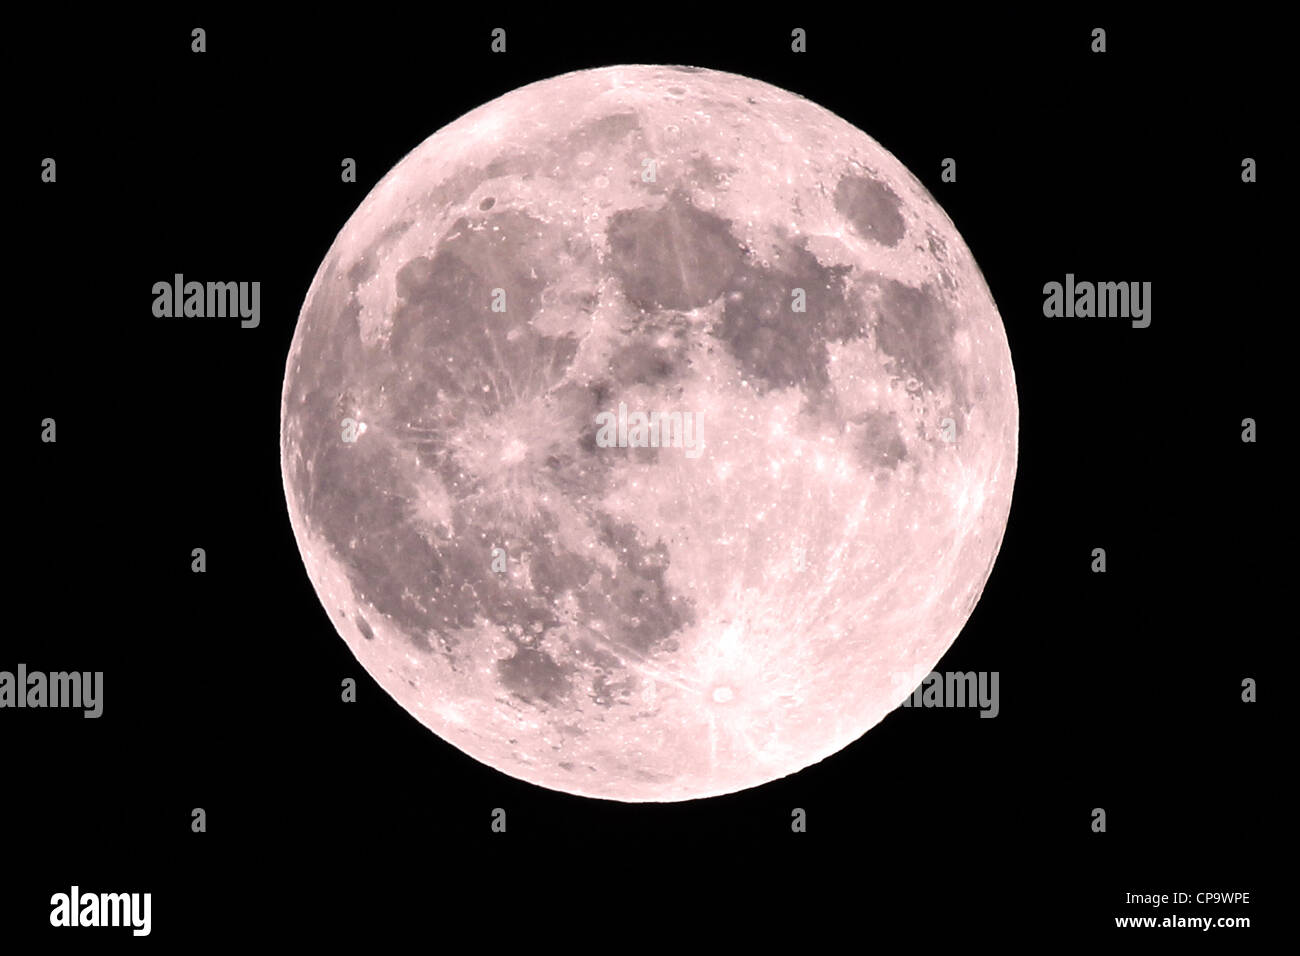 Red Super Moon at 100% full, taken at its perigee on 5 May 2012. A Super Moon occurs when a full moon is at its - Stock Image